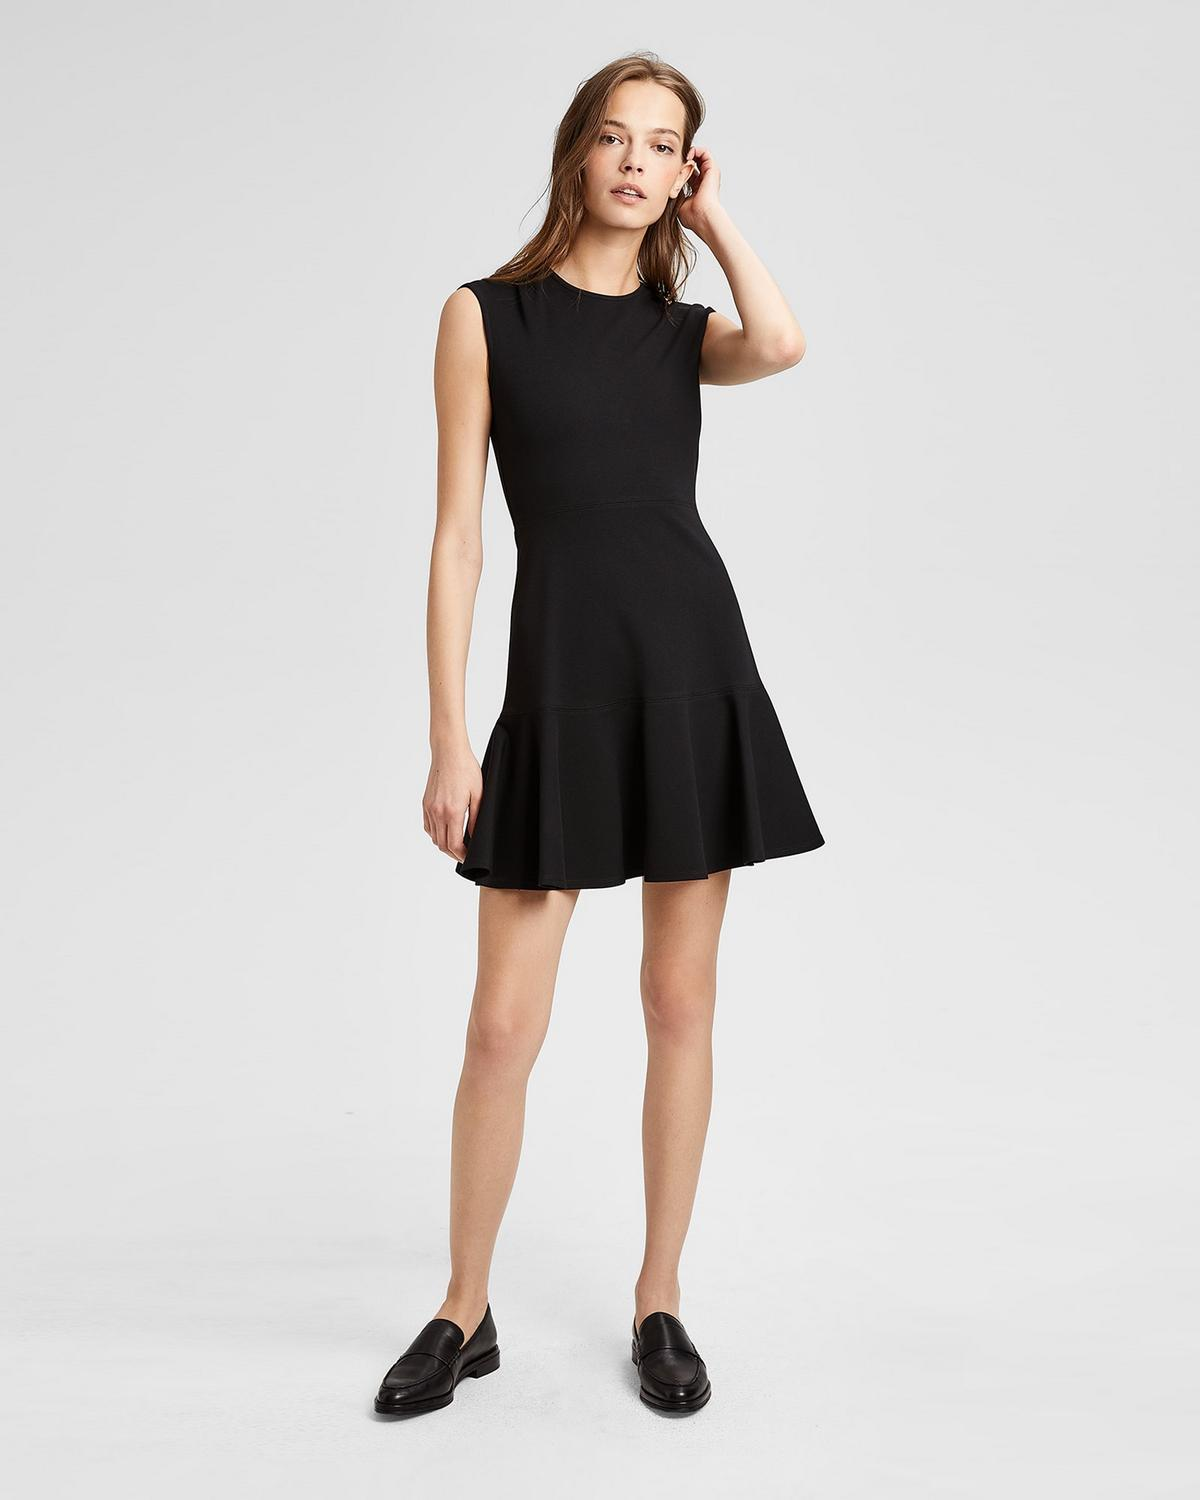 Cheap Big Sale New Theory Essential Flare dress New Fashion Style Of aVYGNx